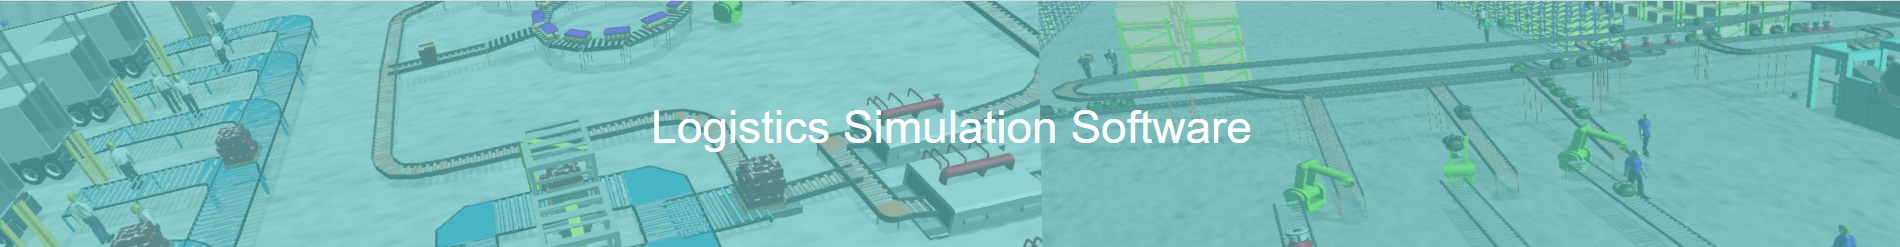 logistics simulation - logistics simulation software